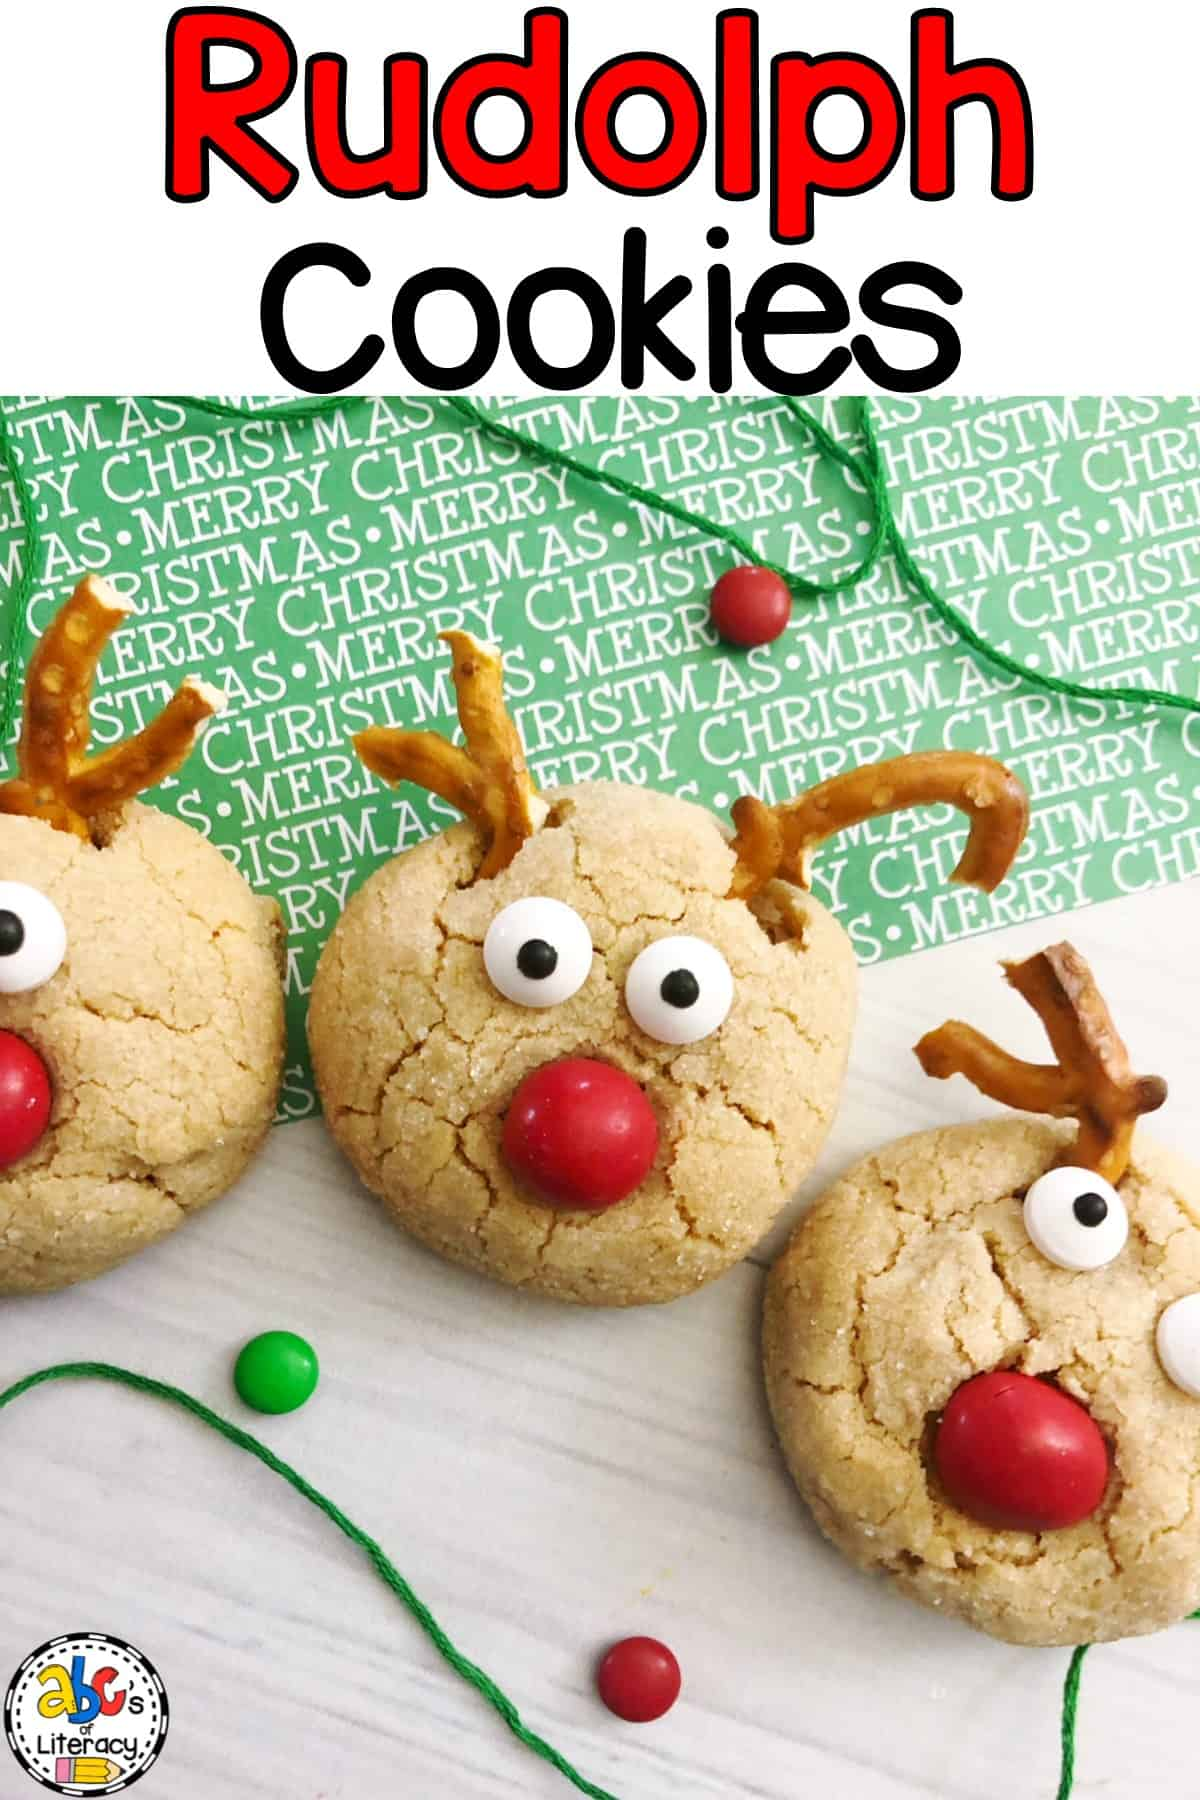 Homemade Rudolph Cookies